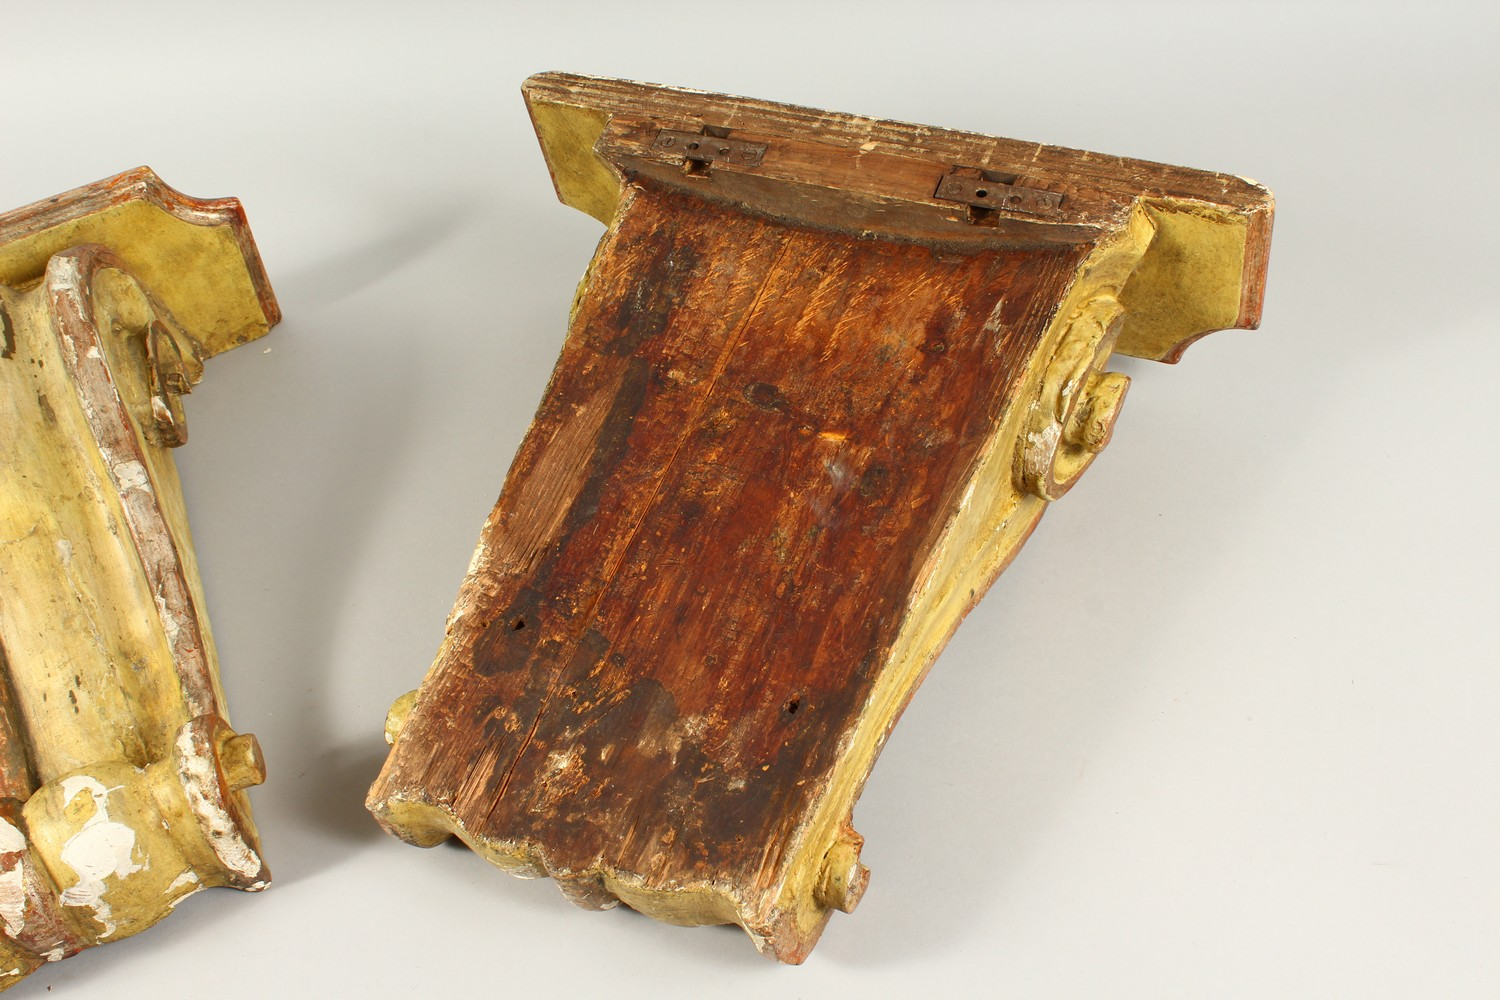 A PAIR OF 19TH/20TH CENTURY CARVED, GESSO AND PAINTED SCROLLING WALL BRACKETS. 41cms high x 40cms - Image 9 of 10